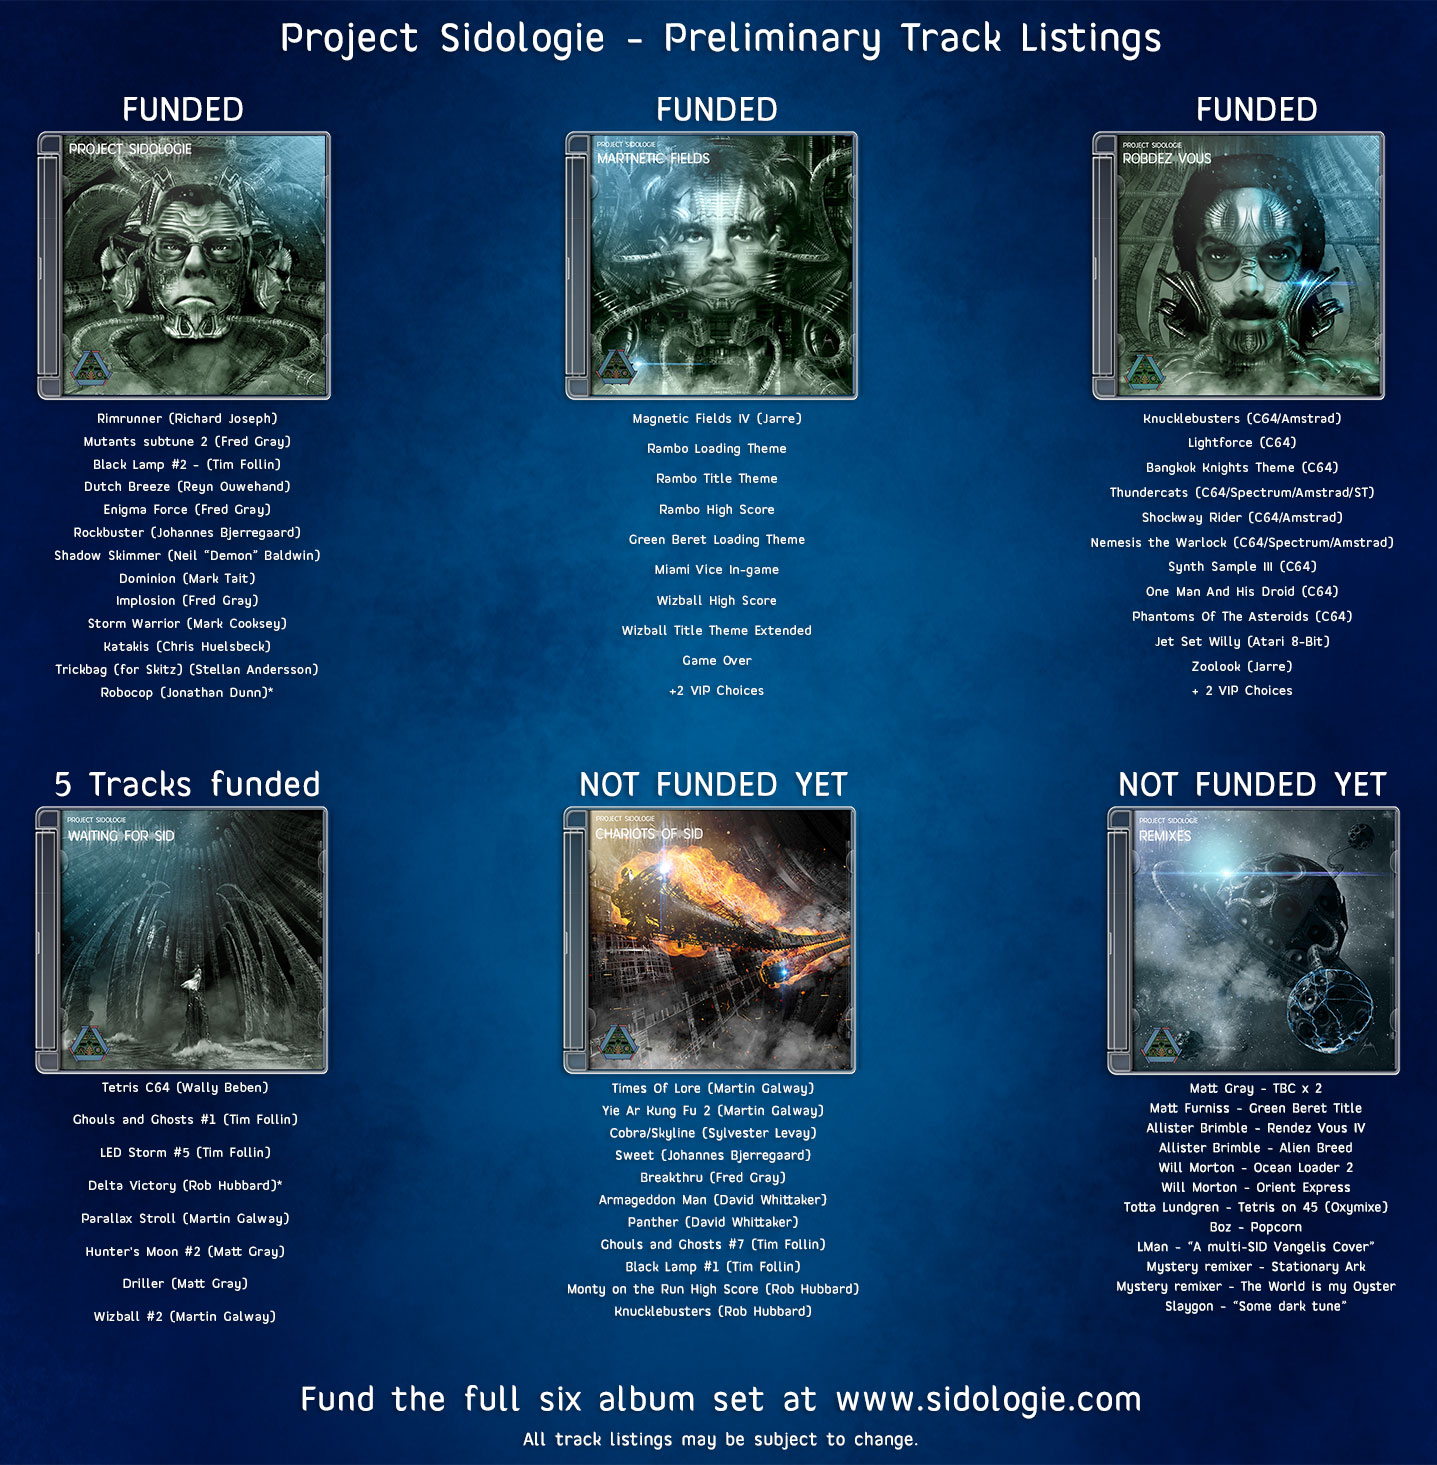 projects-sidologie-track-listing